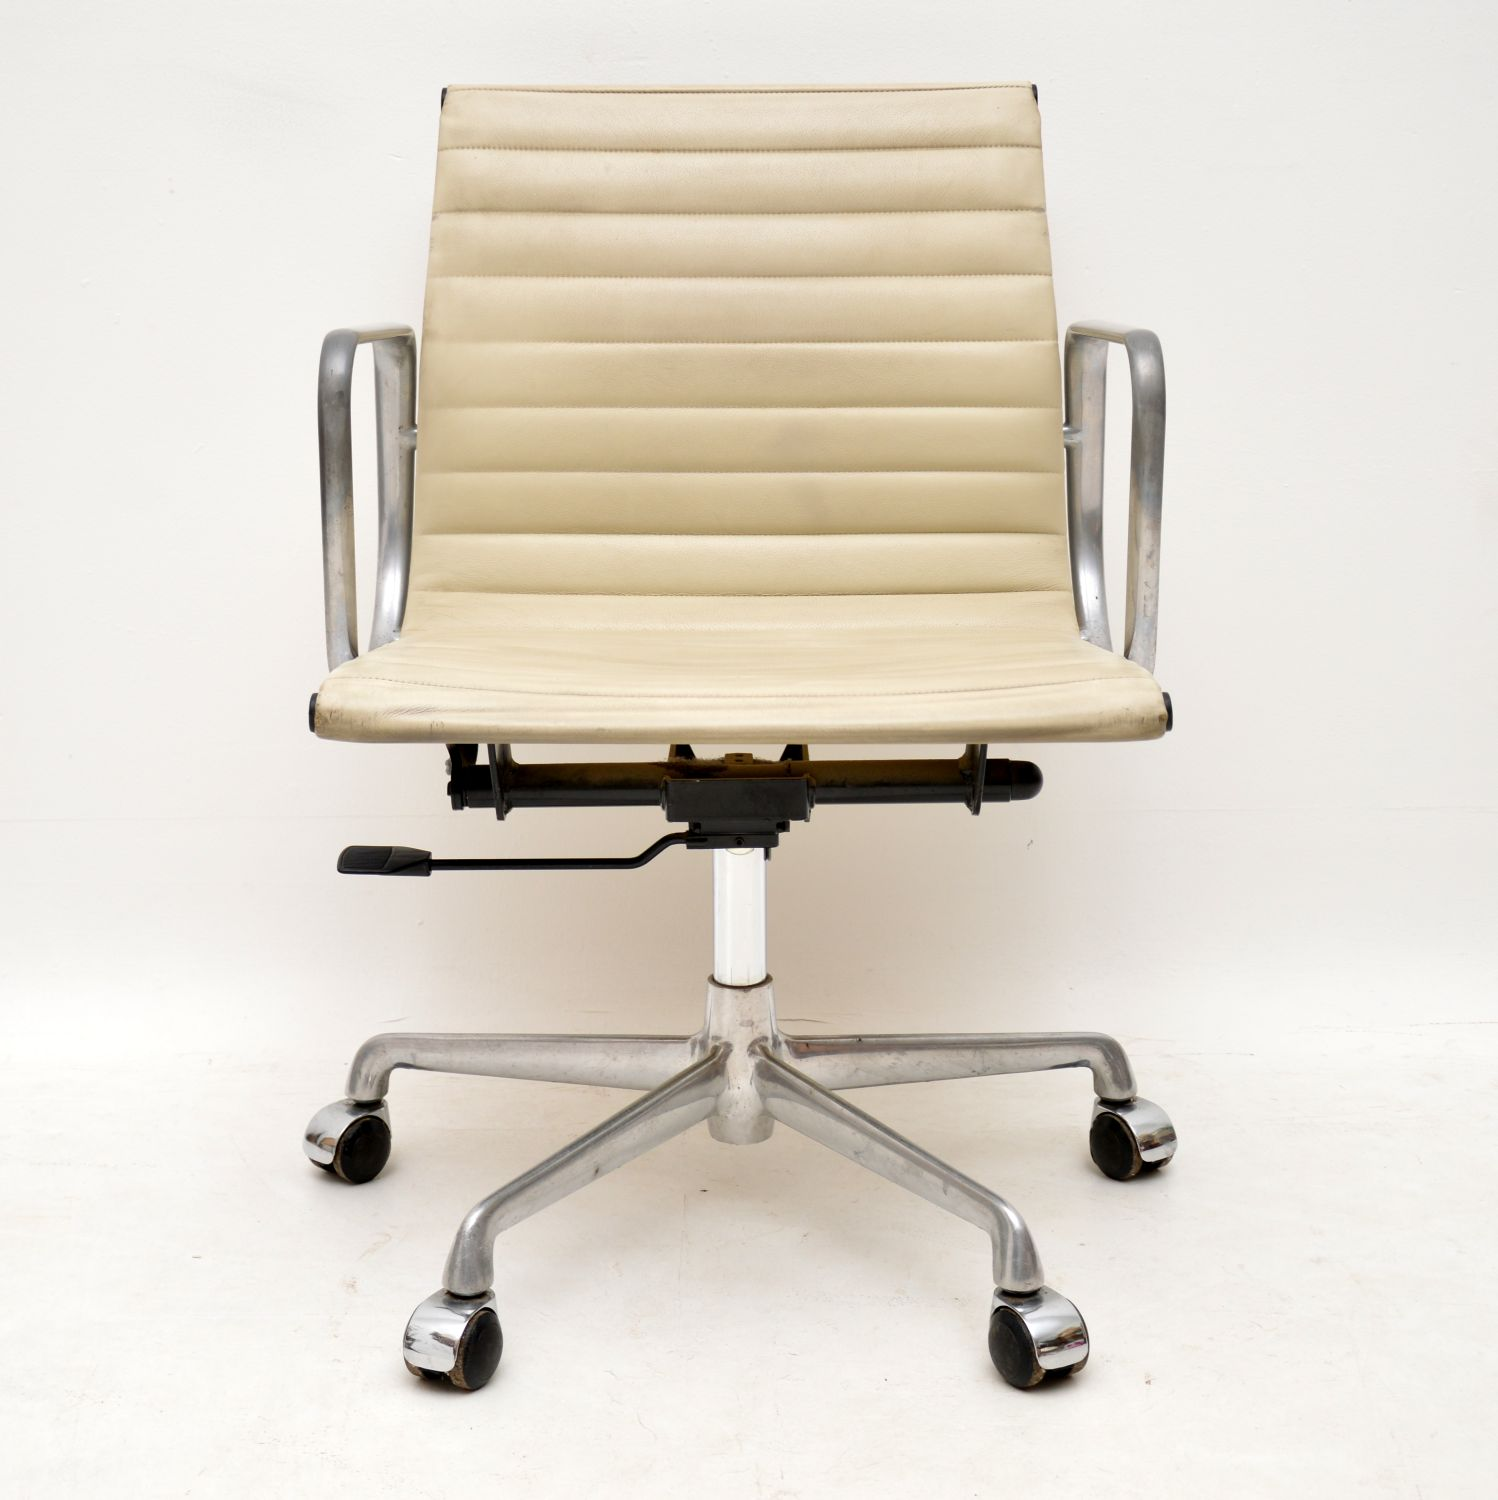 Image of: Original Vintage Leather Desk Chair By Charles Eames For Icf Retrospective Interiors Retro Furniture Vintage Mid Century Furniture Vintage Danish Modern Furniture Antique Furniture London